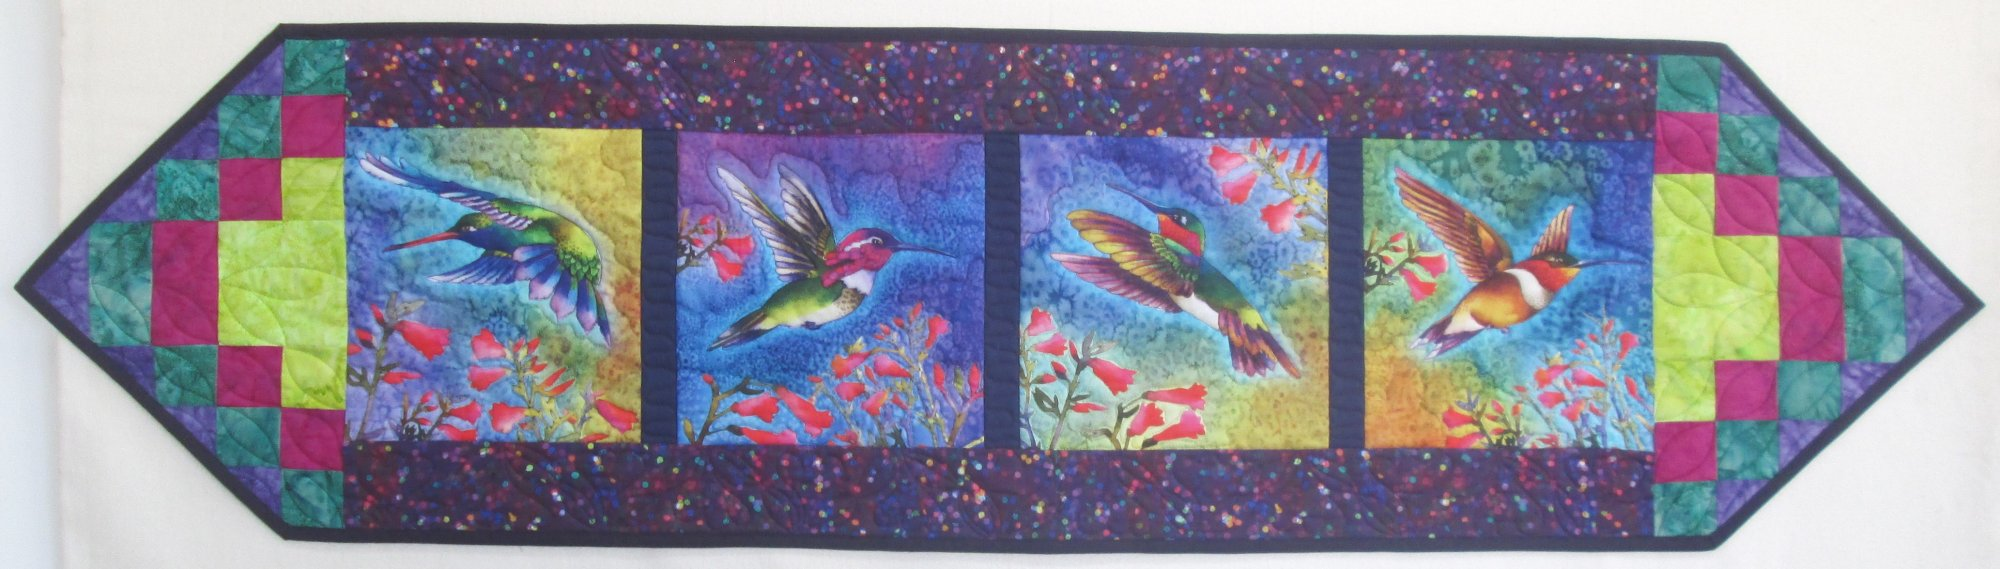 Nature Studies Hummingbird What's For Dinner Table Runner Sample 15.5 x 60